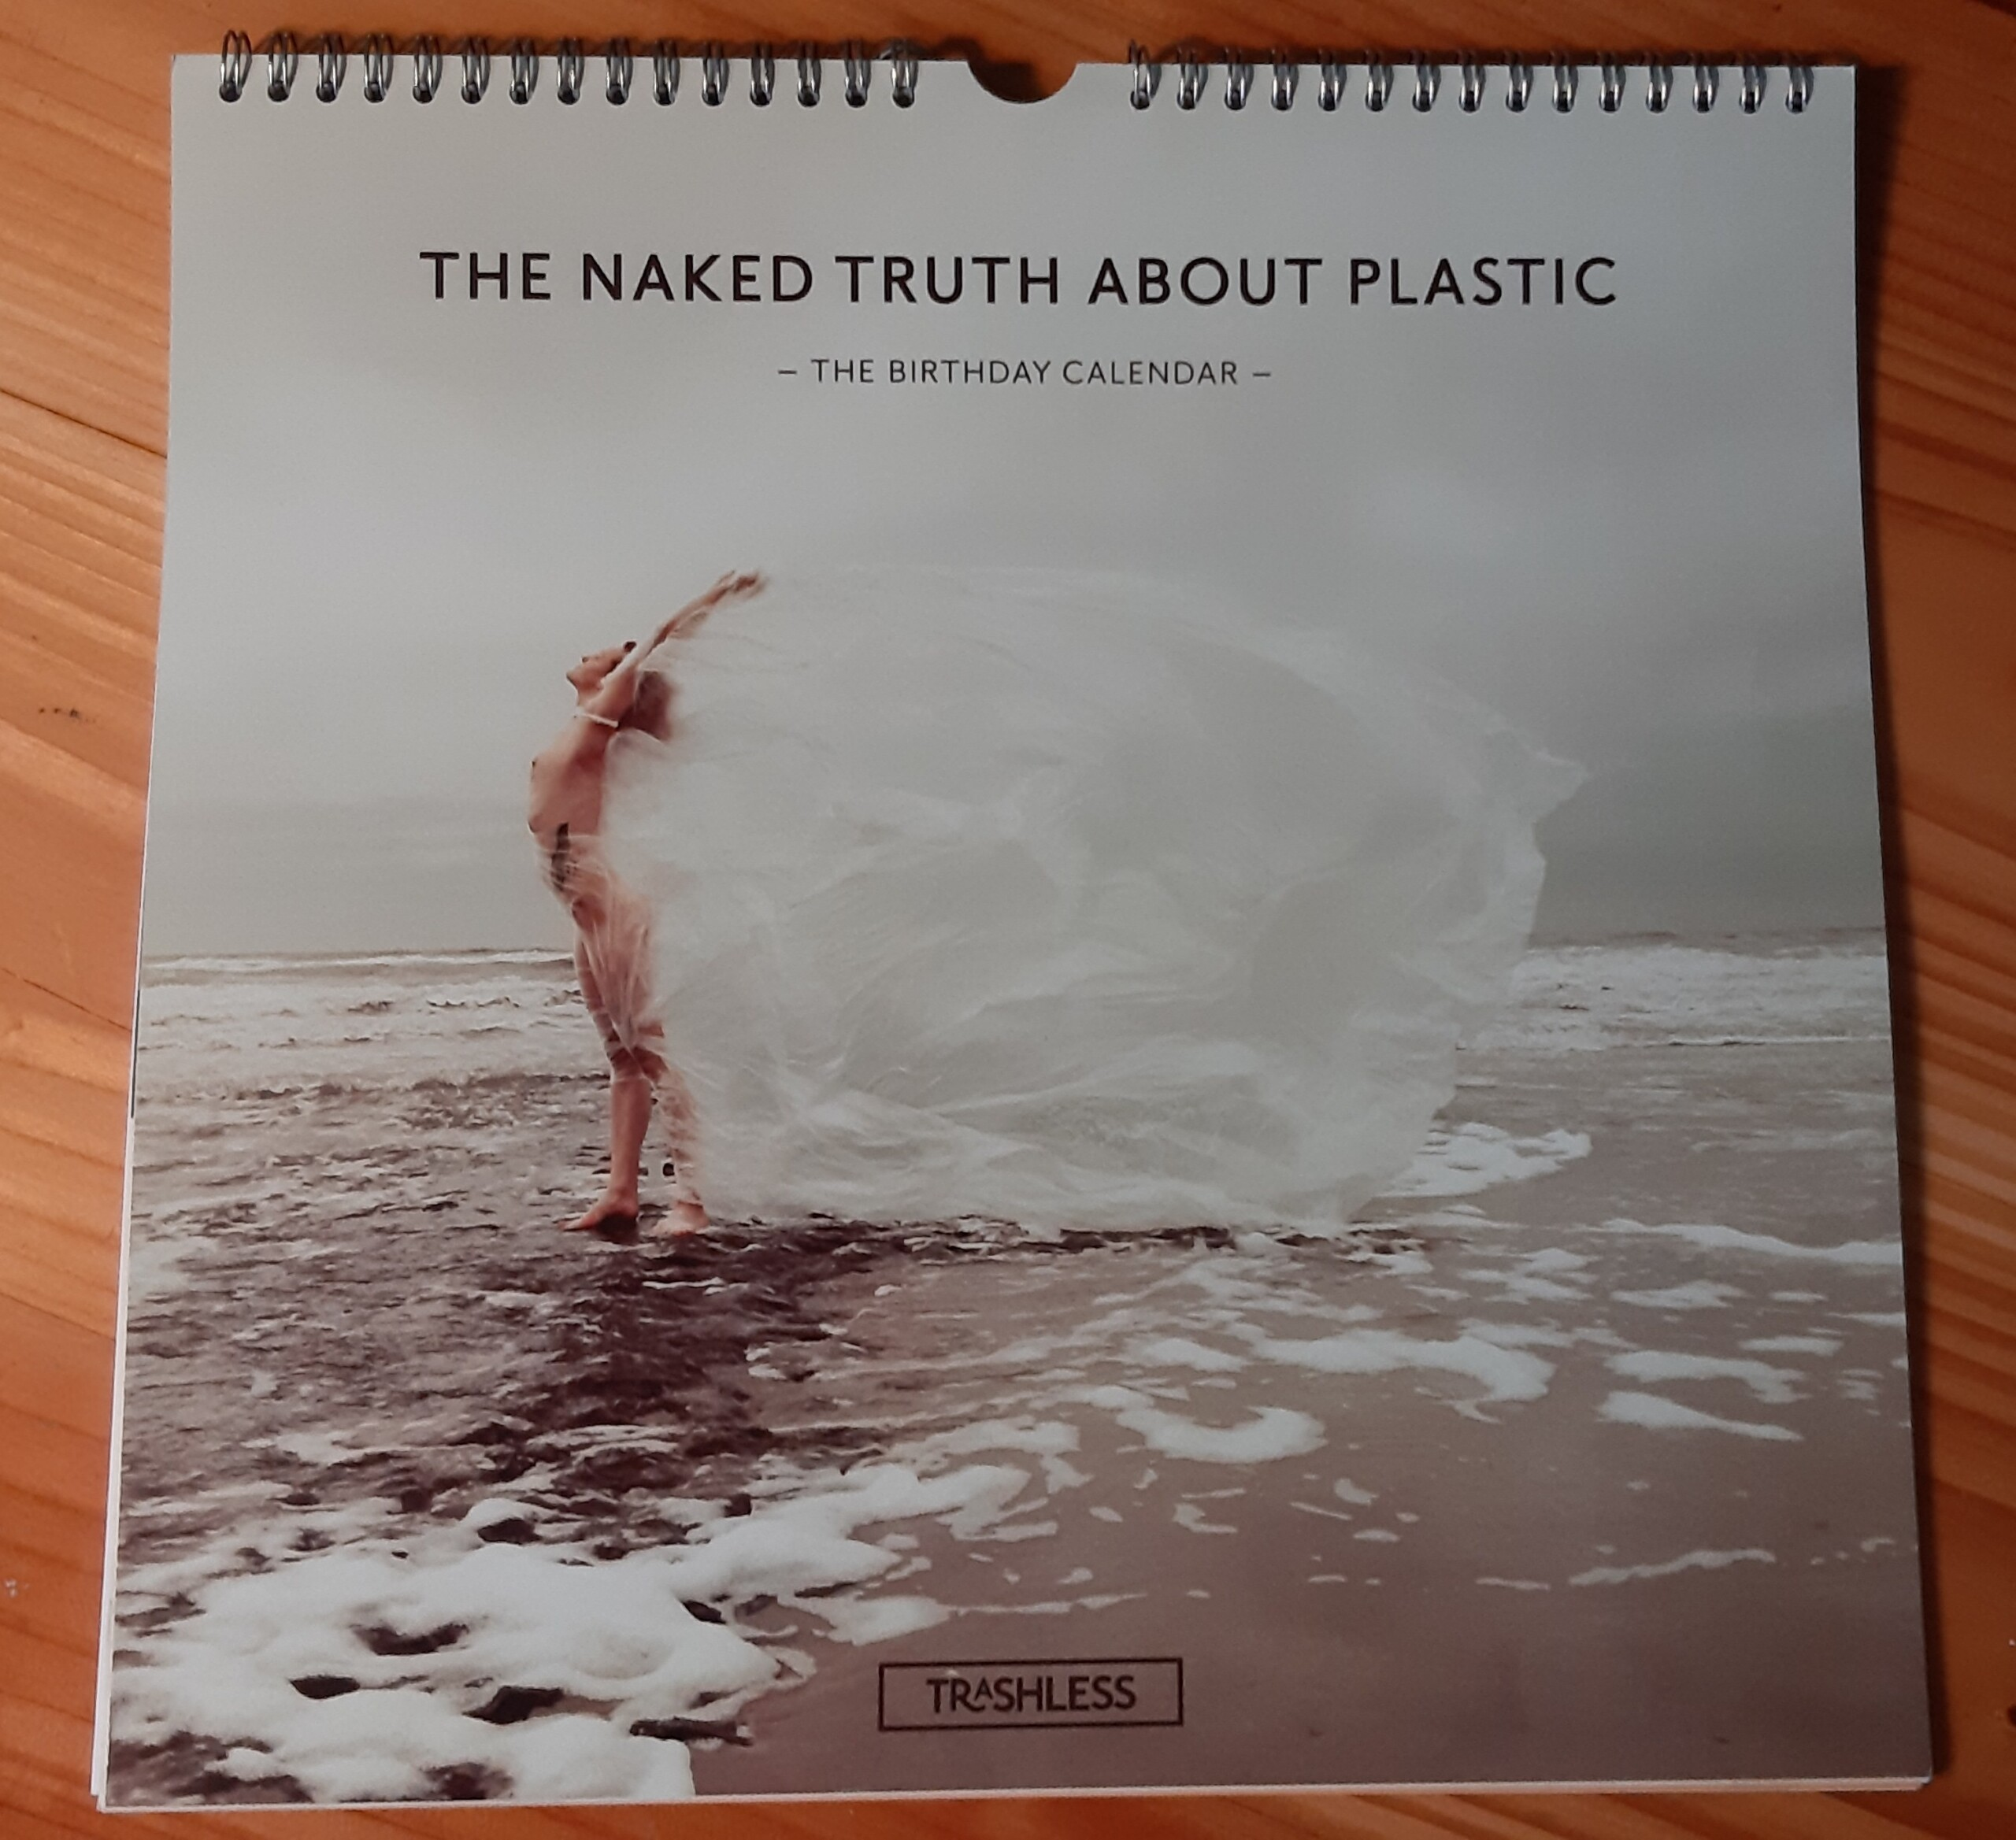 The naked truth about plastic